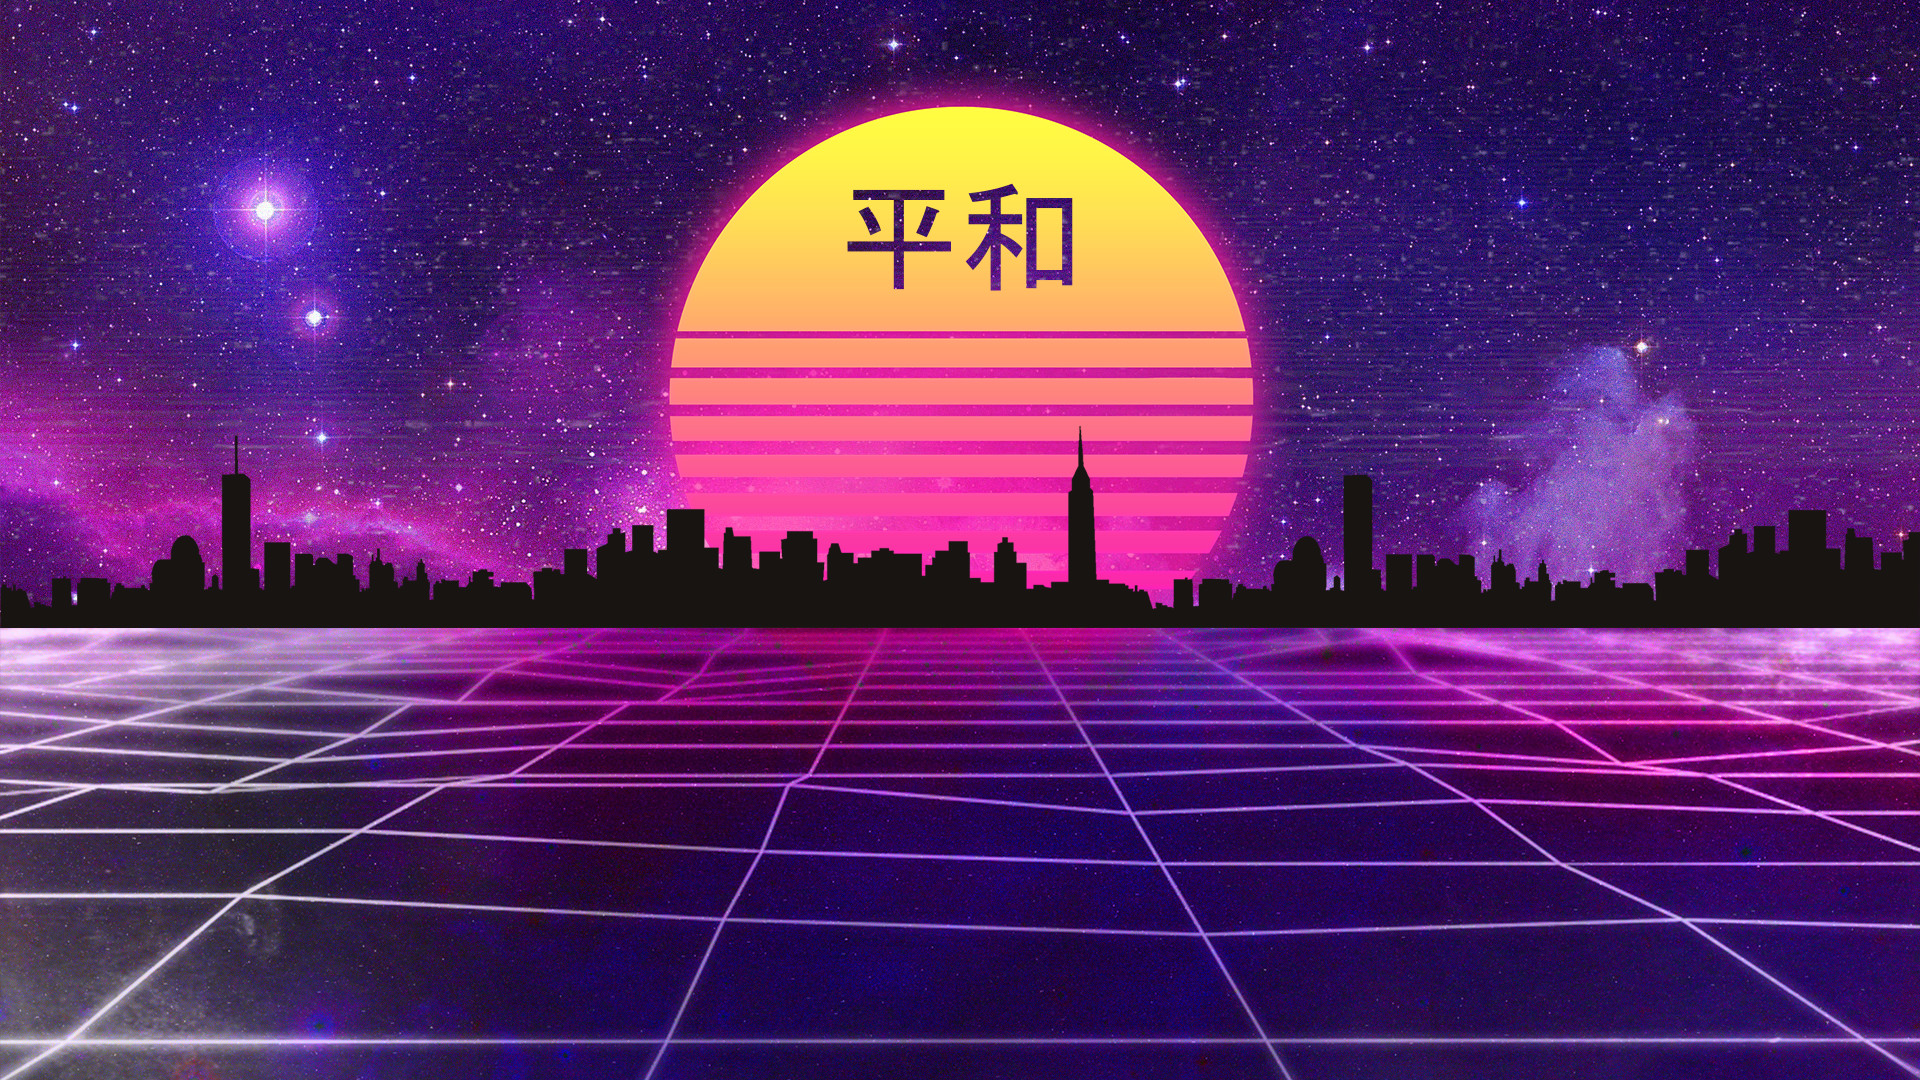 Res: 1920x1080, Retrowave Japanese Style Wallpaper by HalukAliev Retrowave Japanese Style  Wallpaper by HalukAliev